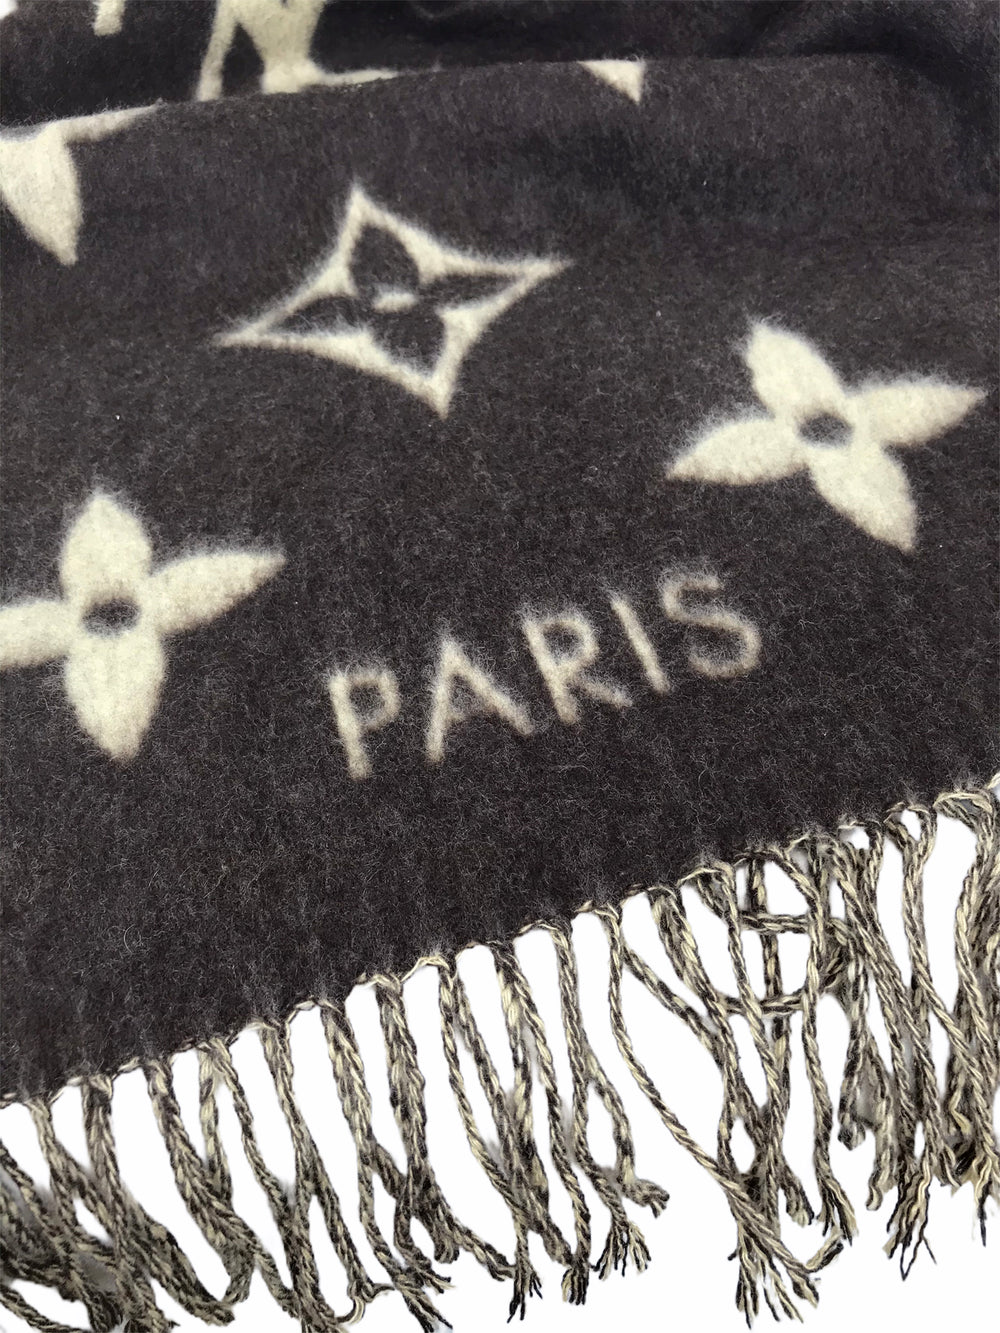 Louis Vuitton Cashmere Scarf - As Seen on Instagram 19/08/2020